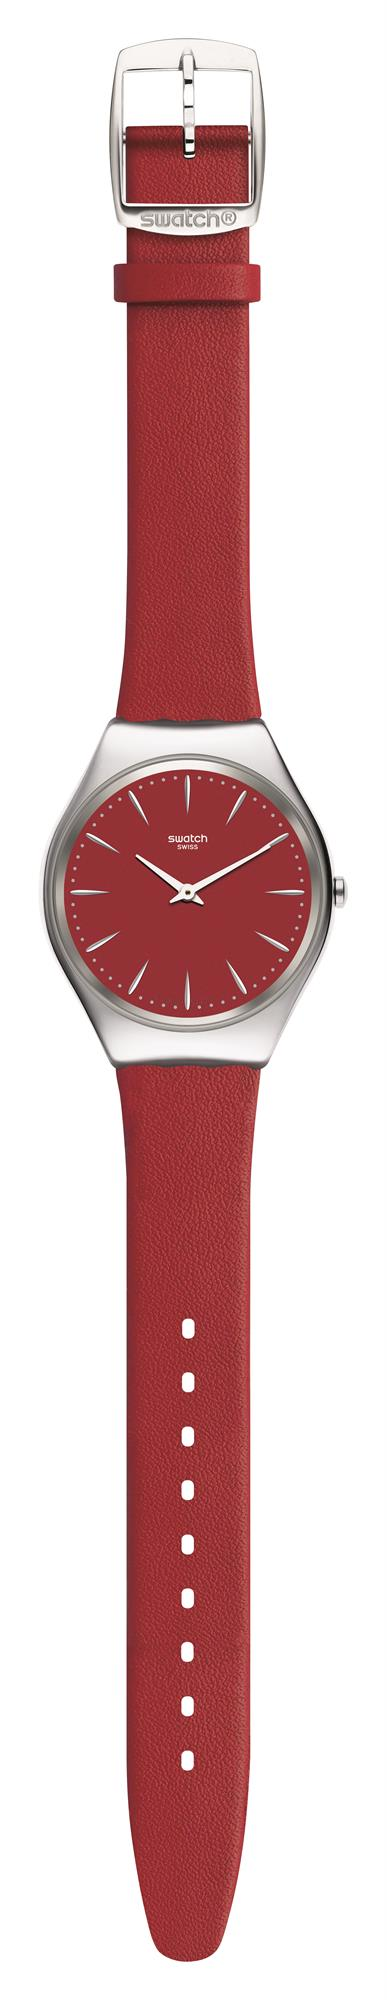 Swatch Skin Irony Skinrossa Red Leather Strap Ladies Watch SYXS119 38mmThis Swatch Skin Irony Skinrossa Red Leather Strap Ladies Watch SYXS119 38mm is a superb addition to the skin irony collection. A red dial is complimented by silver coloured indexes and white hands, which are powered by a quartz movement. To protect the dial, a stainless steel case and plastic glass sit around the dial. To equip this timepiece a red leather strap is fastened by a standard buckle to sit comfortably around ones wrist. This watch has a water resistance of 30 metres, making it suitable for light splashes. Key Features:Red Leather StrapSkin Irony CollectionRed DialQuartz Movement30m Water ResistantStainless Steel CaseStandard BuckleThe Brand: SwatchSwatch watches are globally-renowned for their trademark combination of quality Swiss watchmaking, pioneering use of plastic cases and straps, and eye-catching designs. There is a Swatch watch to suit every age, taste and lifestyle, with this variety and sense of difference ensuring that Swatch watches remain some of the most popular and sought after currently manufactured.